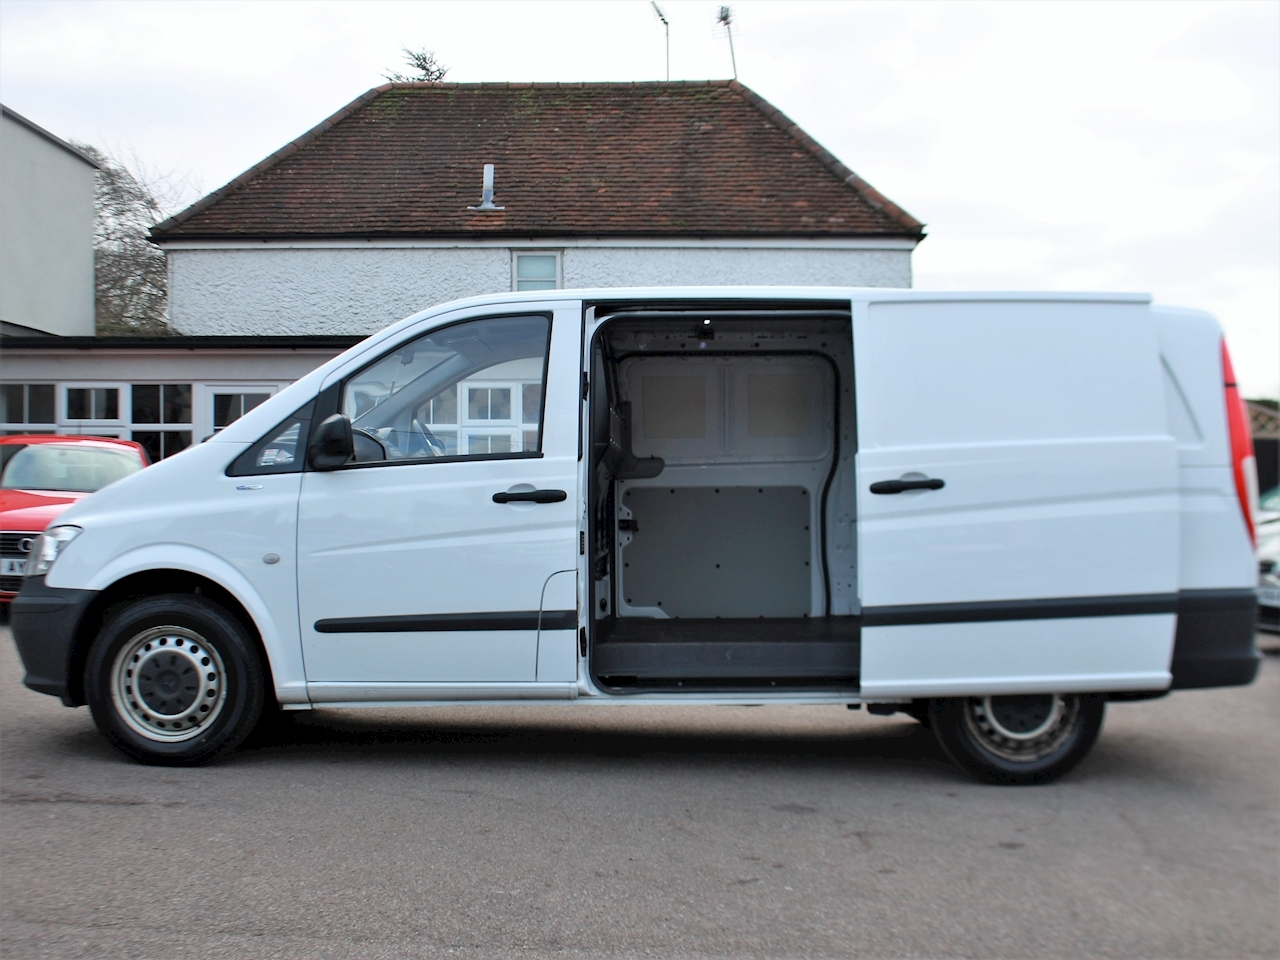 Mercedes-Benz Vito 110 Cdi Blueefficiency - Large 4